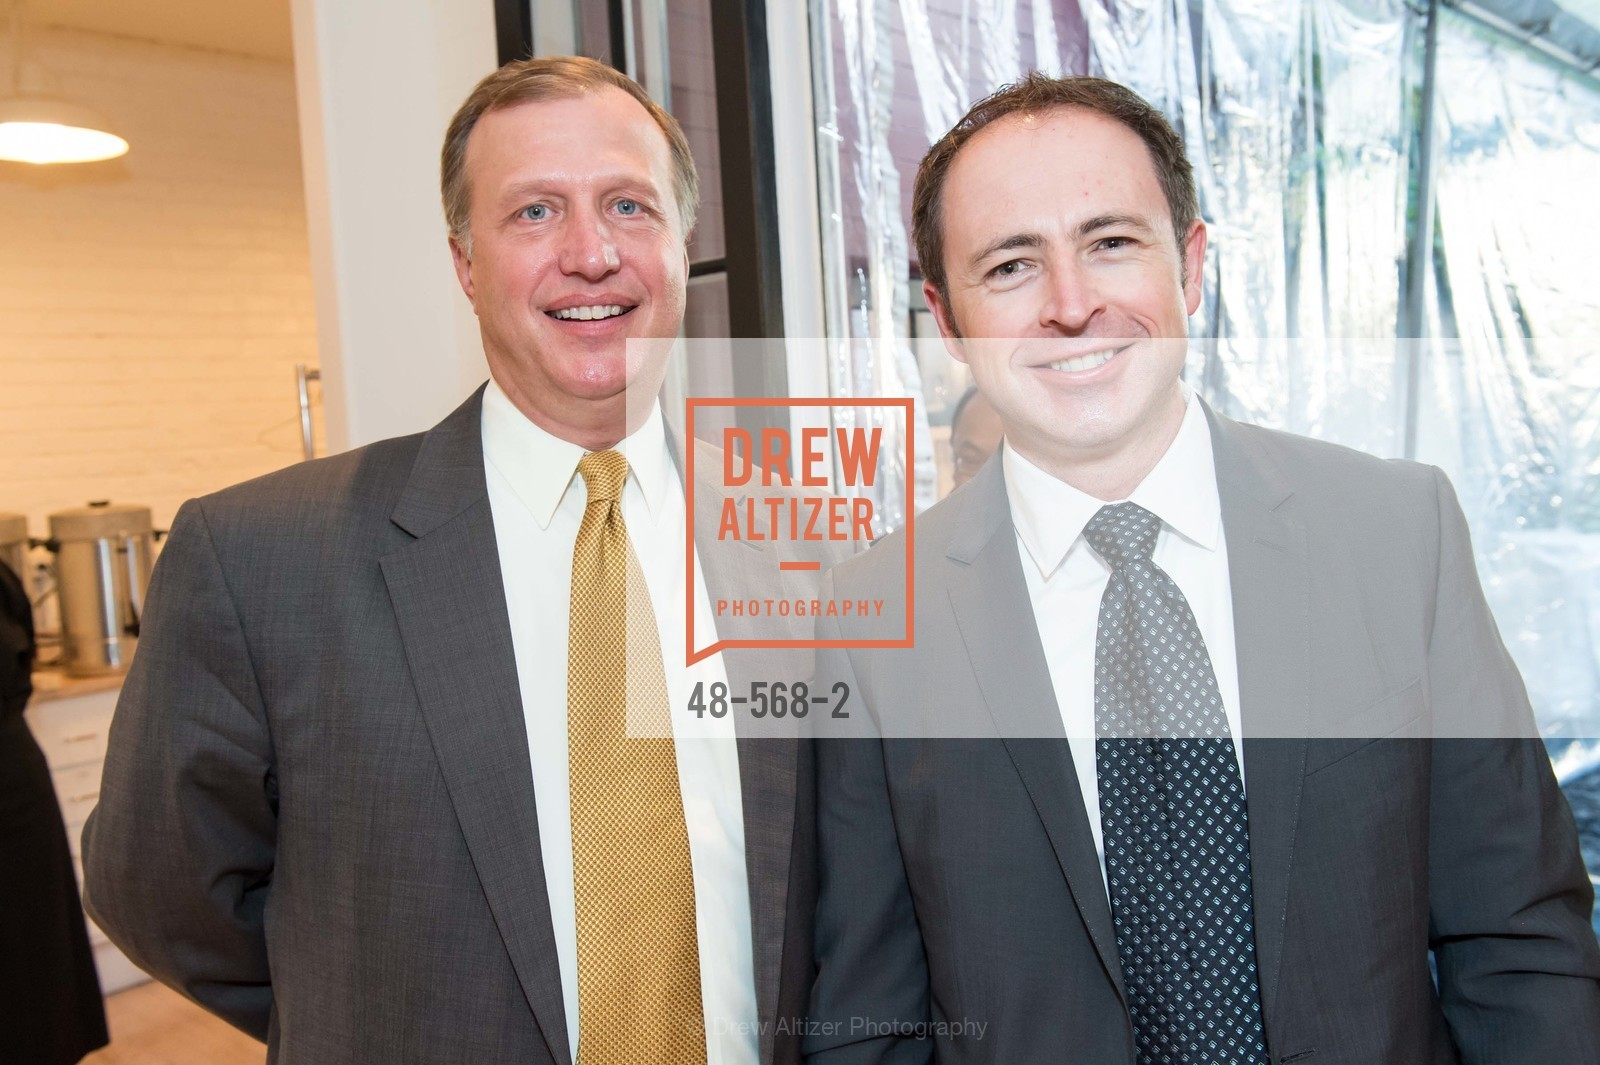 Robert Kret, Cody Hartley, SOTHEBY'S  Hosts a Private Viewing of Highlights from the Collection of MRS. PAUL MELLON, US, September 17th, 2014,Drew Altizer, Drew Altizer Photography, full-service agency, private events, San Francisco photographer, photographer california